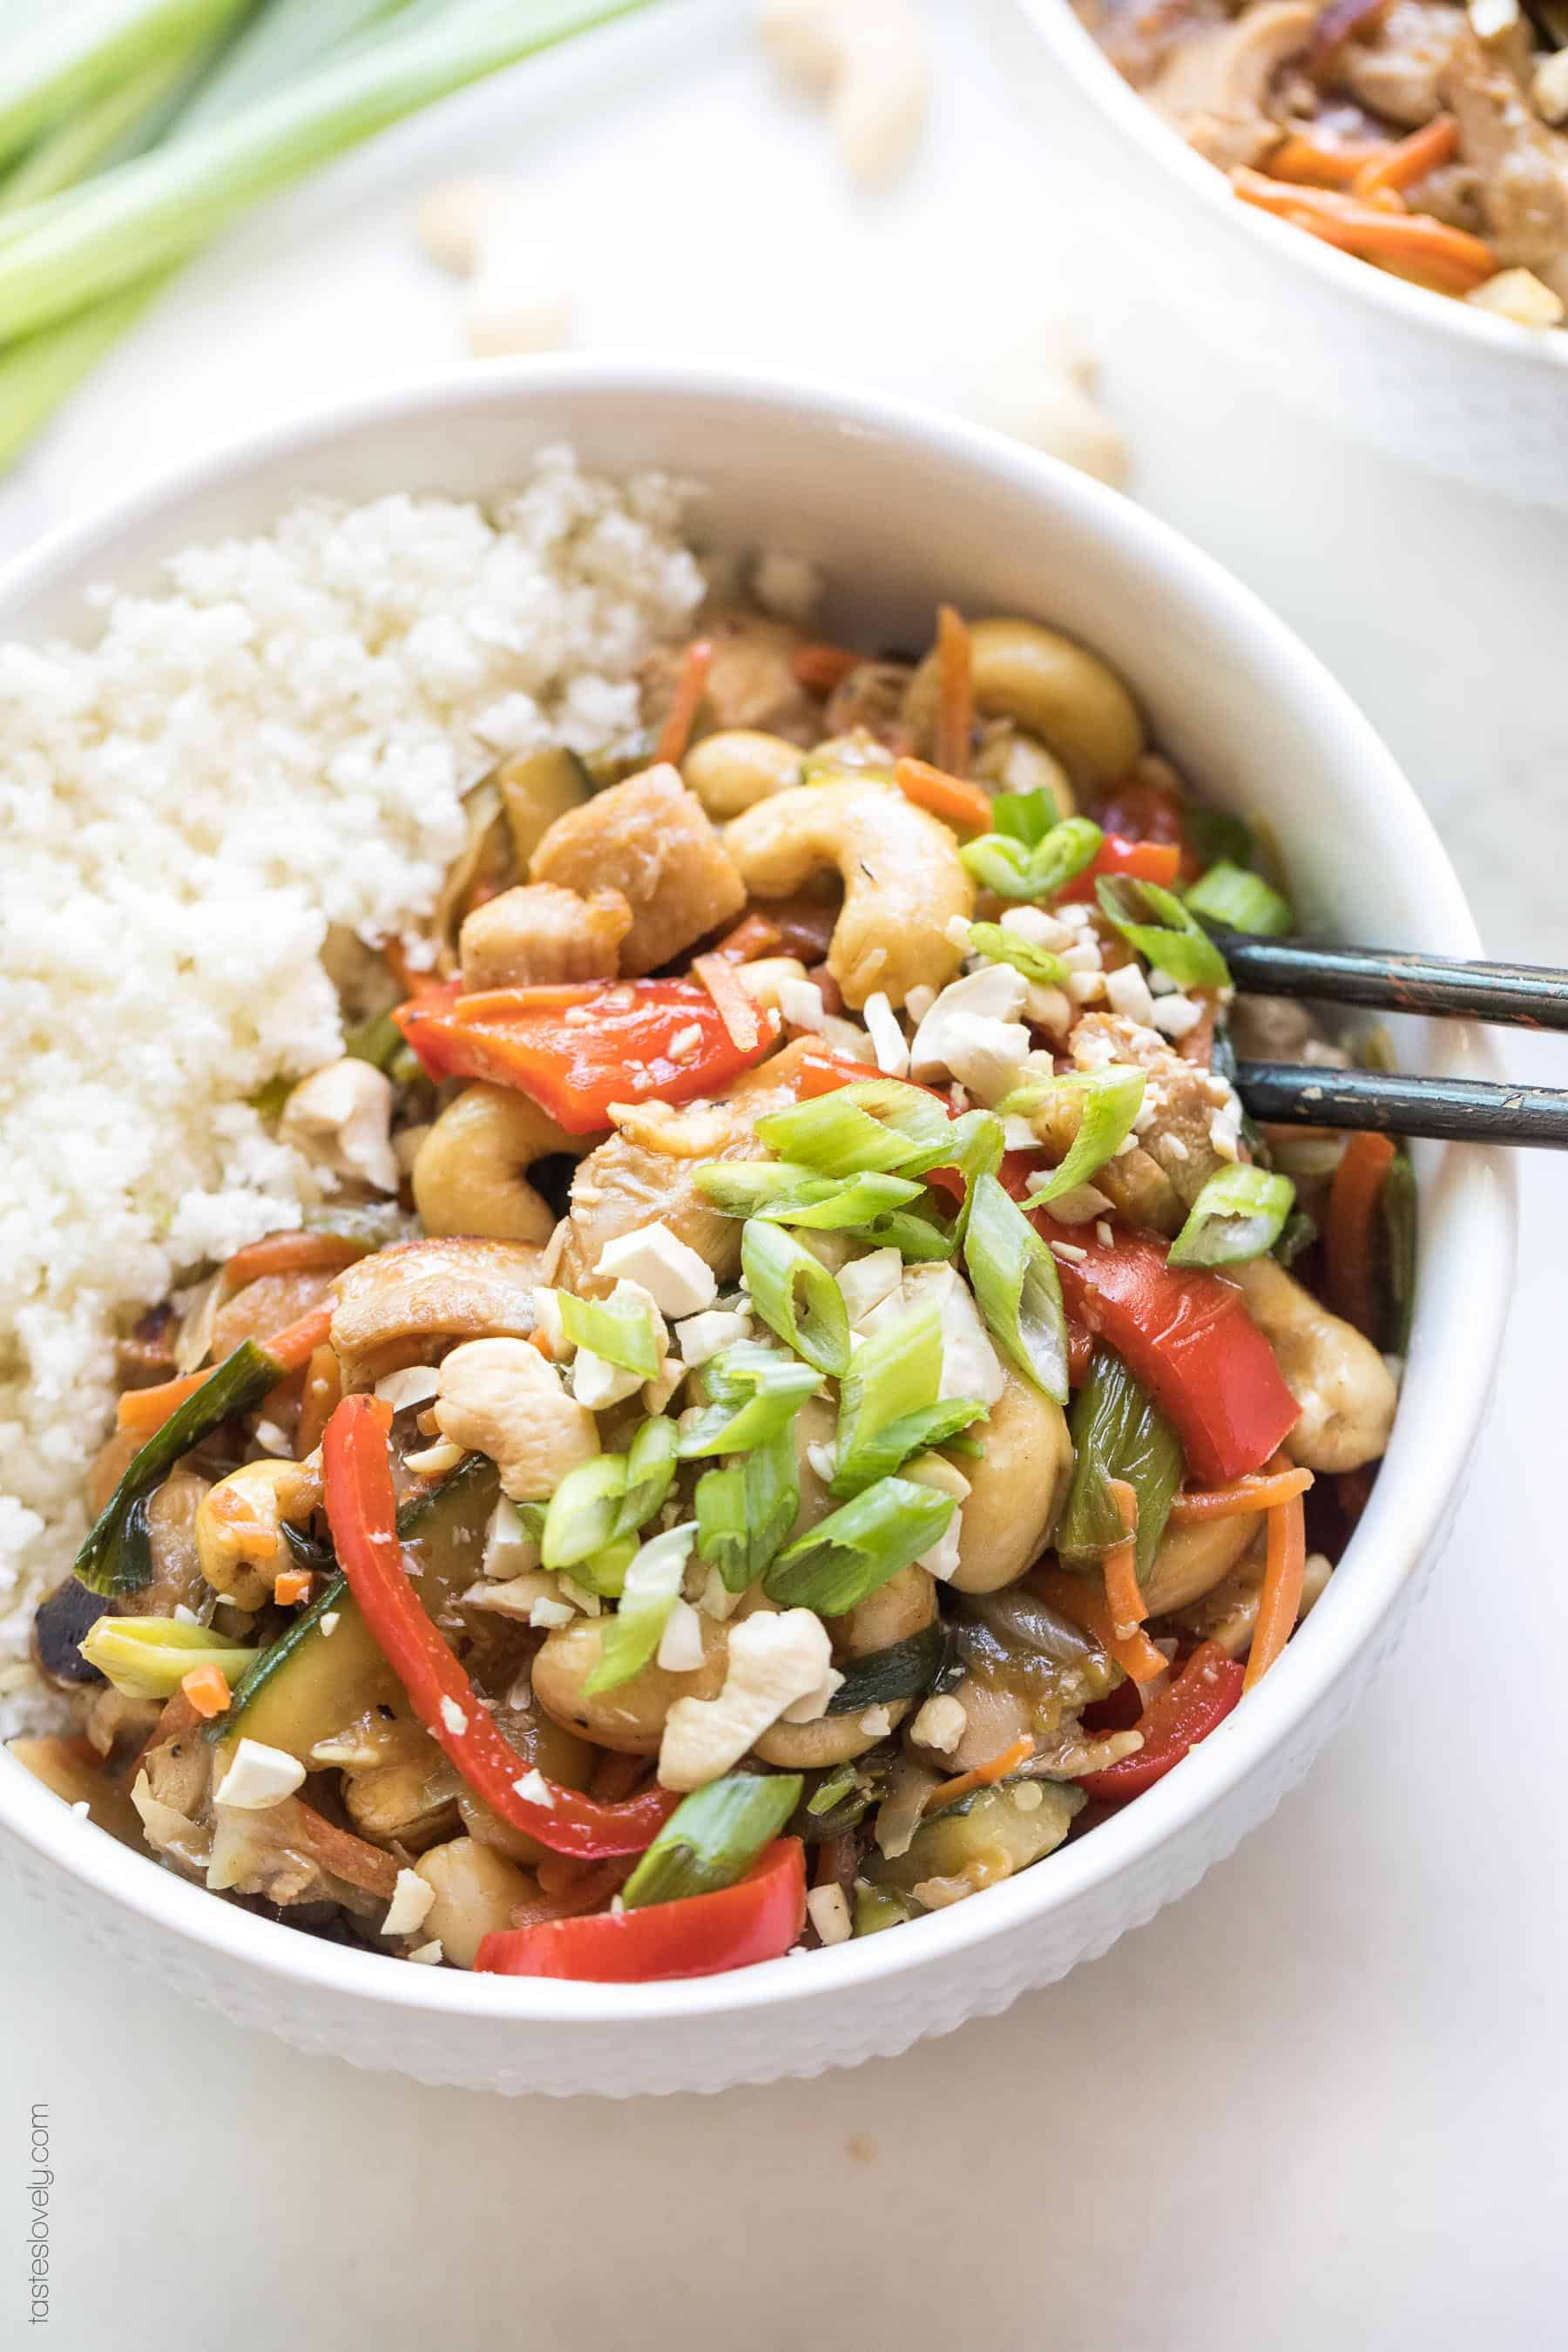 Chicken stir fry in a bowl with cauliflower rice